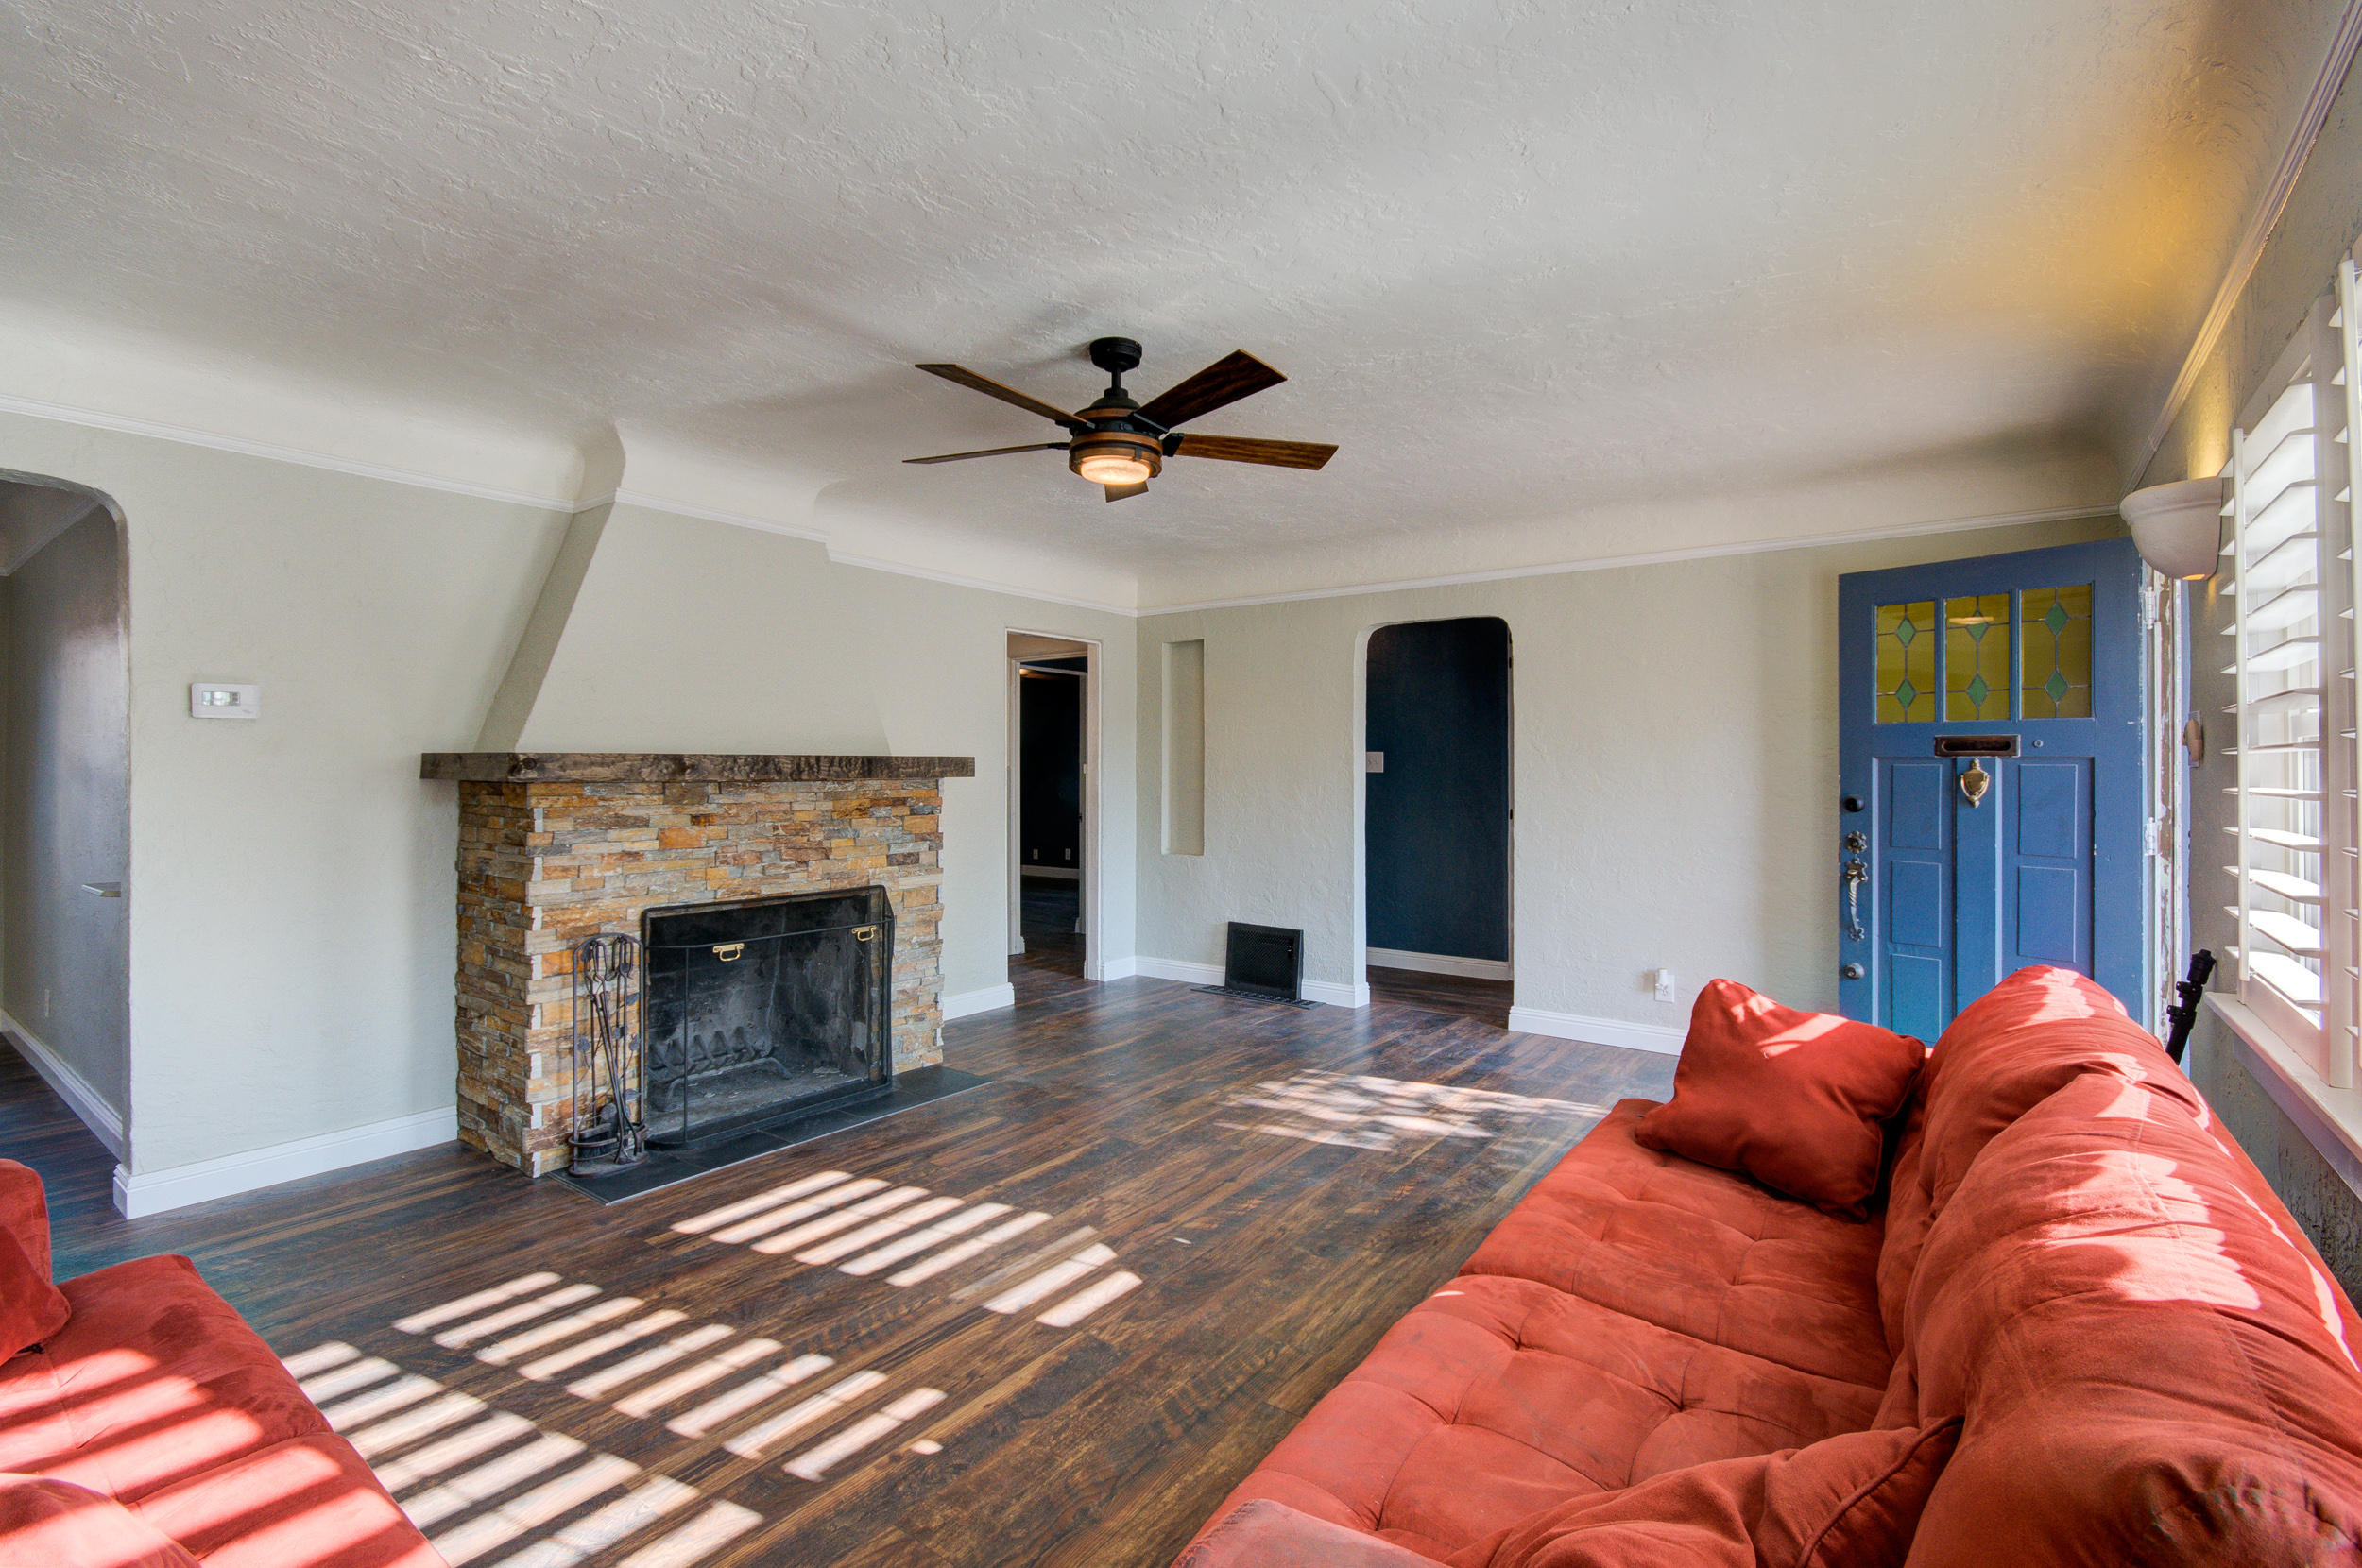 Great location! Charming home with character and modern updates in the Ridgecrest/UNM area. Features a double sided wood burning fireplace with custom stacked stone, cove ceilings, updated bath, new vinyl flooring and paint. Kitchen has updated cabinets and Saltillo tile. Home has a versatile bonus/den room with brick floors and soaring ceiling. Walk-in shower, double vanity with added storage in main bath. New washer/dryer and stove to convey. Large backyard with raised garden beds and space for entertaining. The entire front yard has new landscaping for easy maintenance. Close to parks, shopping, Sandia Labs and Nob Hill.